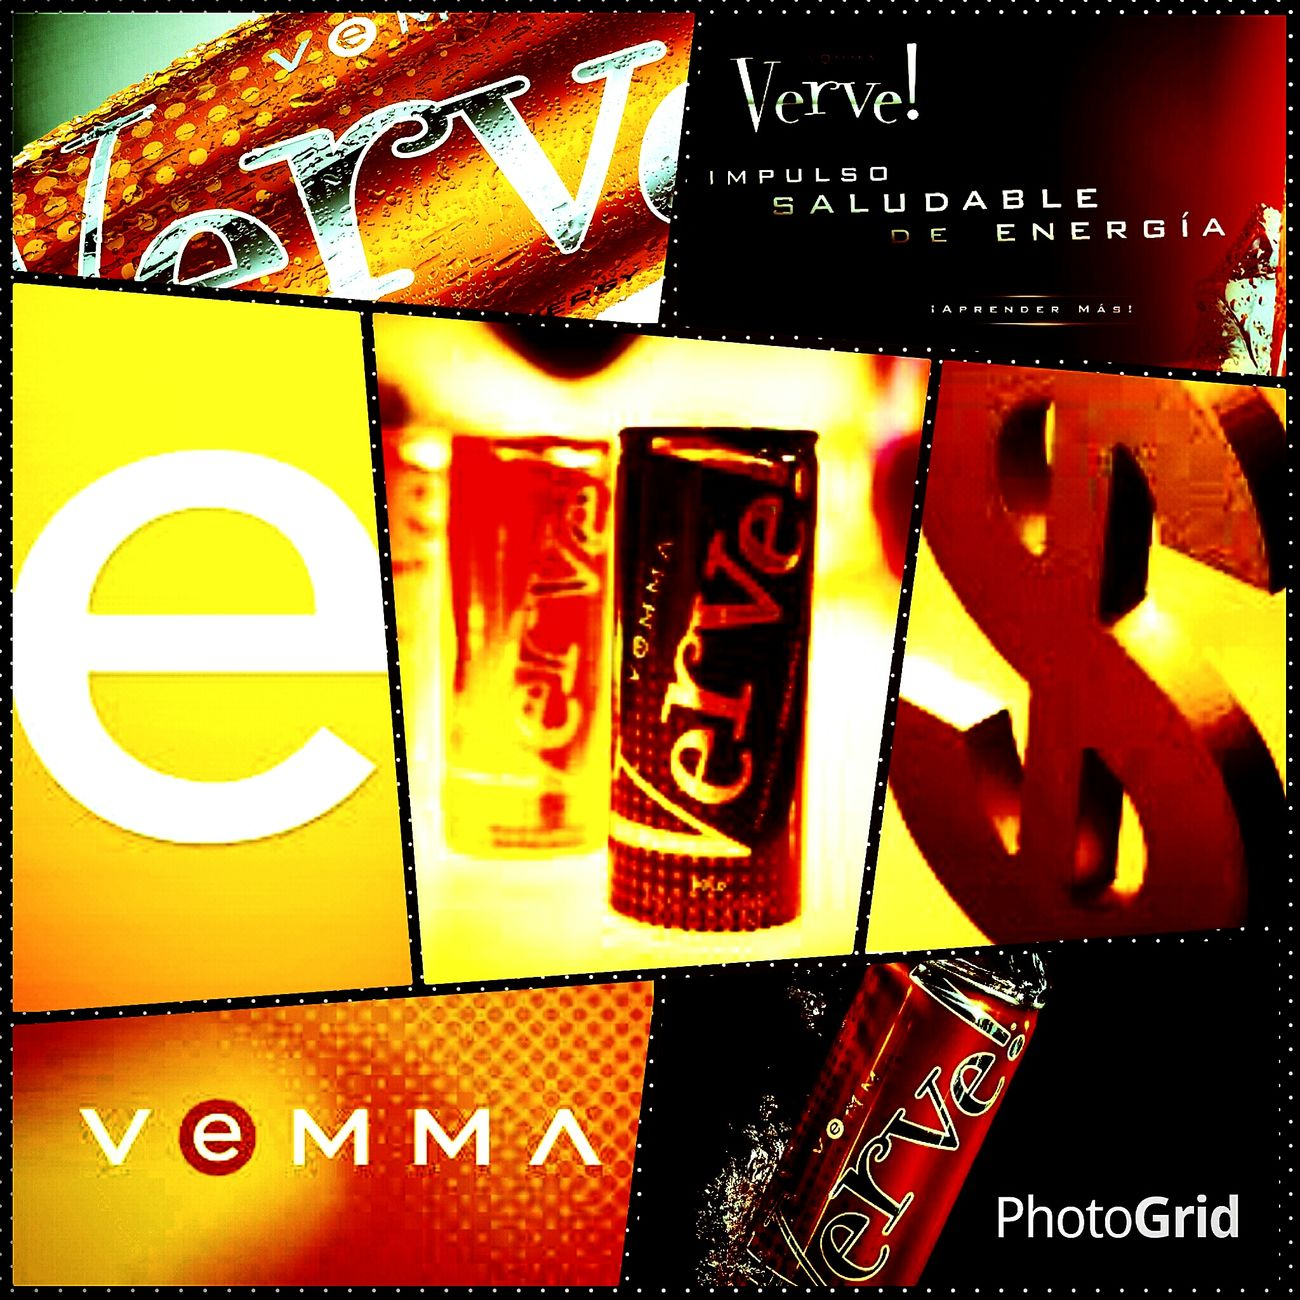 Vemma  Verve  Networkmarketing Vemmacolombia Money